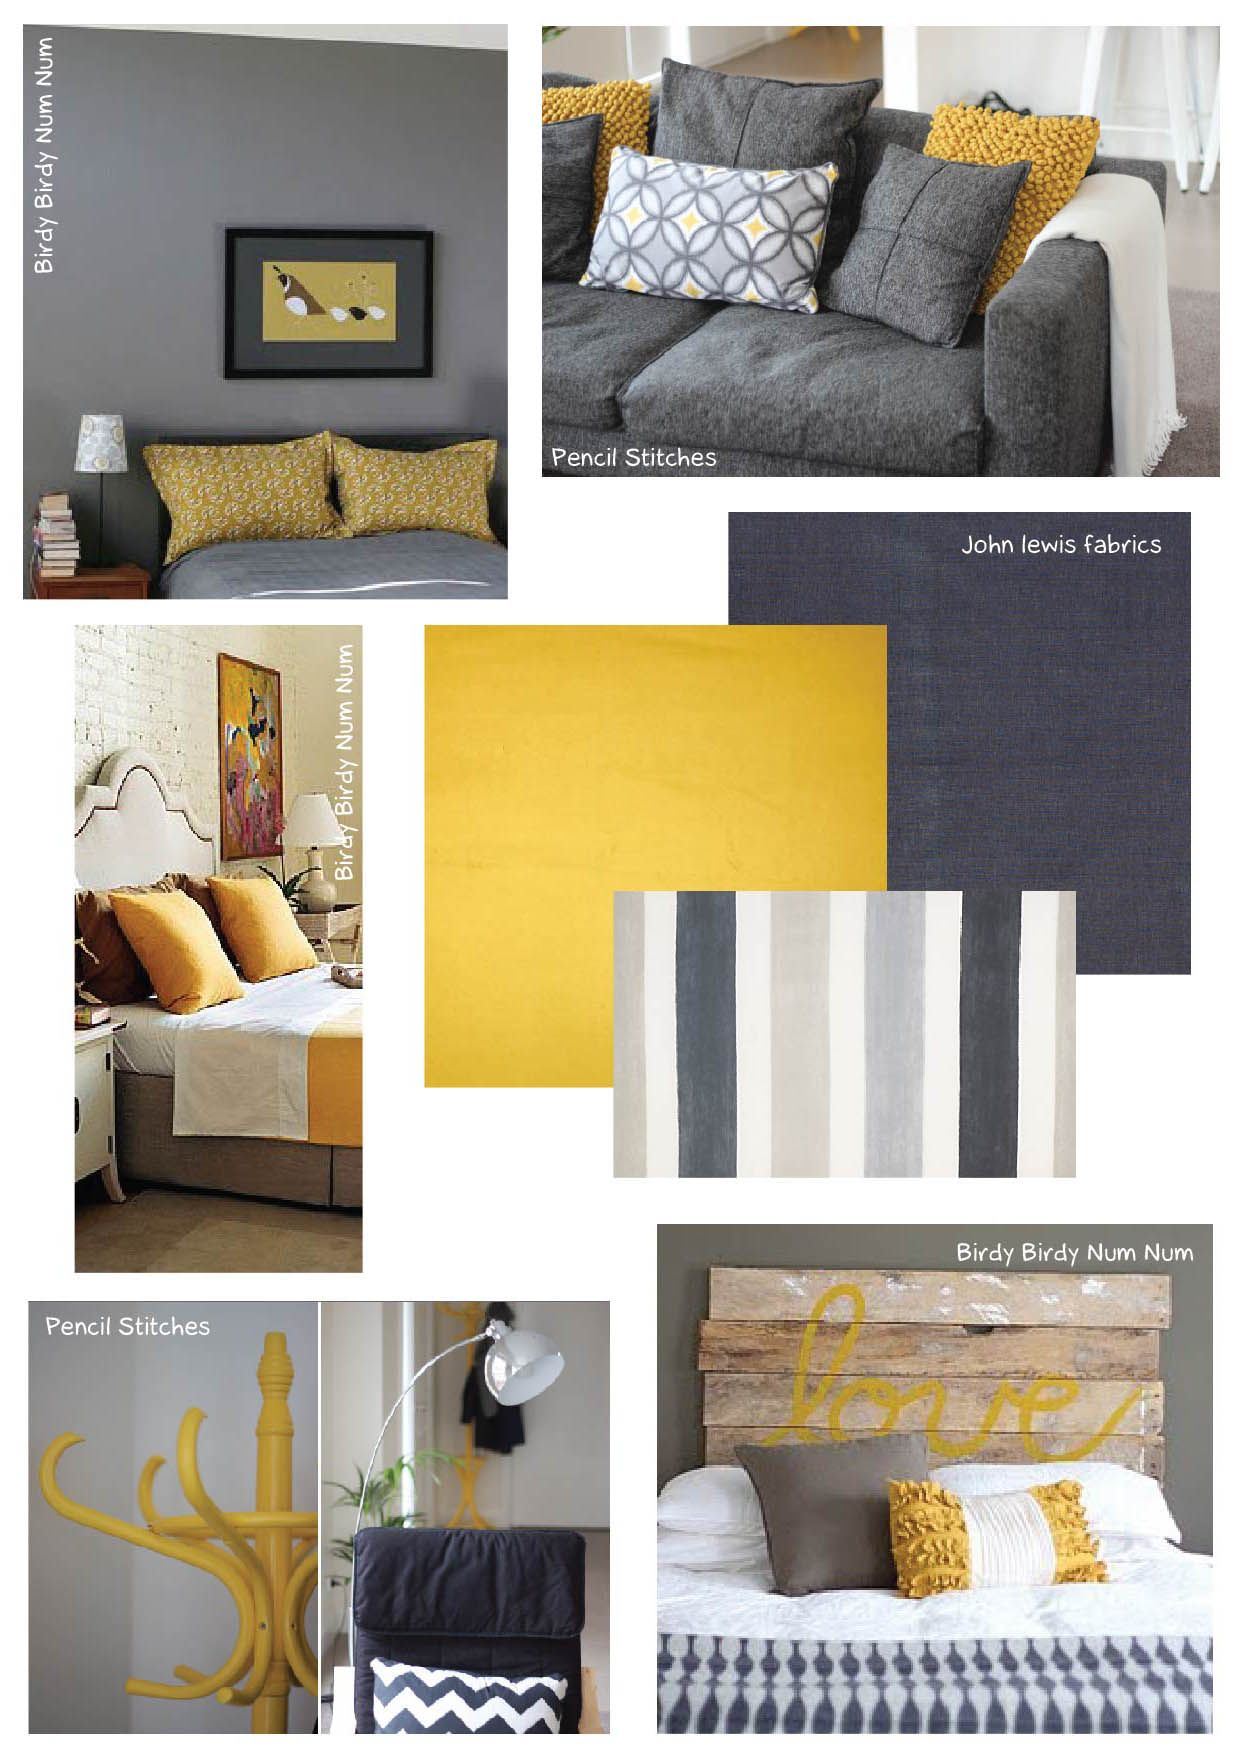 Mustard Accessories For Living Room A Mustard And Charcoal Interior Freshen Up I 39m Planning